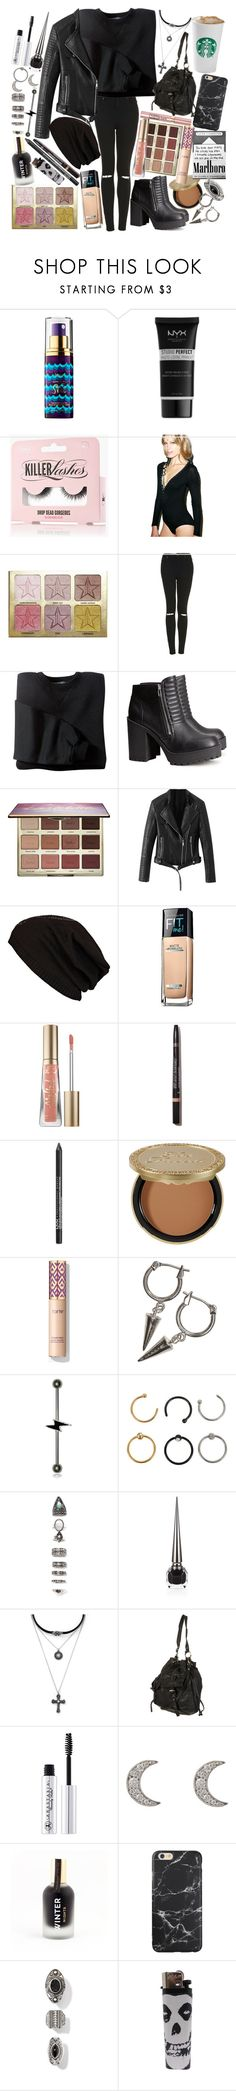 """""""If revenge is for the weak, I guess I'm getting somewhat stronger. There are still a few things I can't swallow, but I'll take care of those tomorrow"""" by thelyricsmatter ❤ liked on Polyvore featuring tarte, NYX, Honey Punch, Topshop, H&M, River Island, Maybelline, Too Faced Cosmetics, L'Oréal Paris and Hot Topic"""